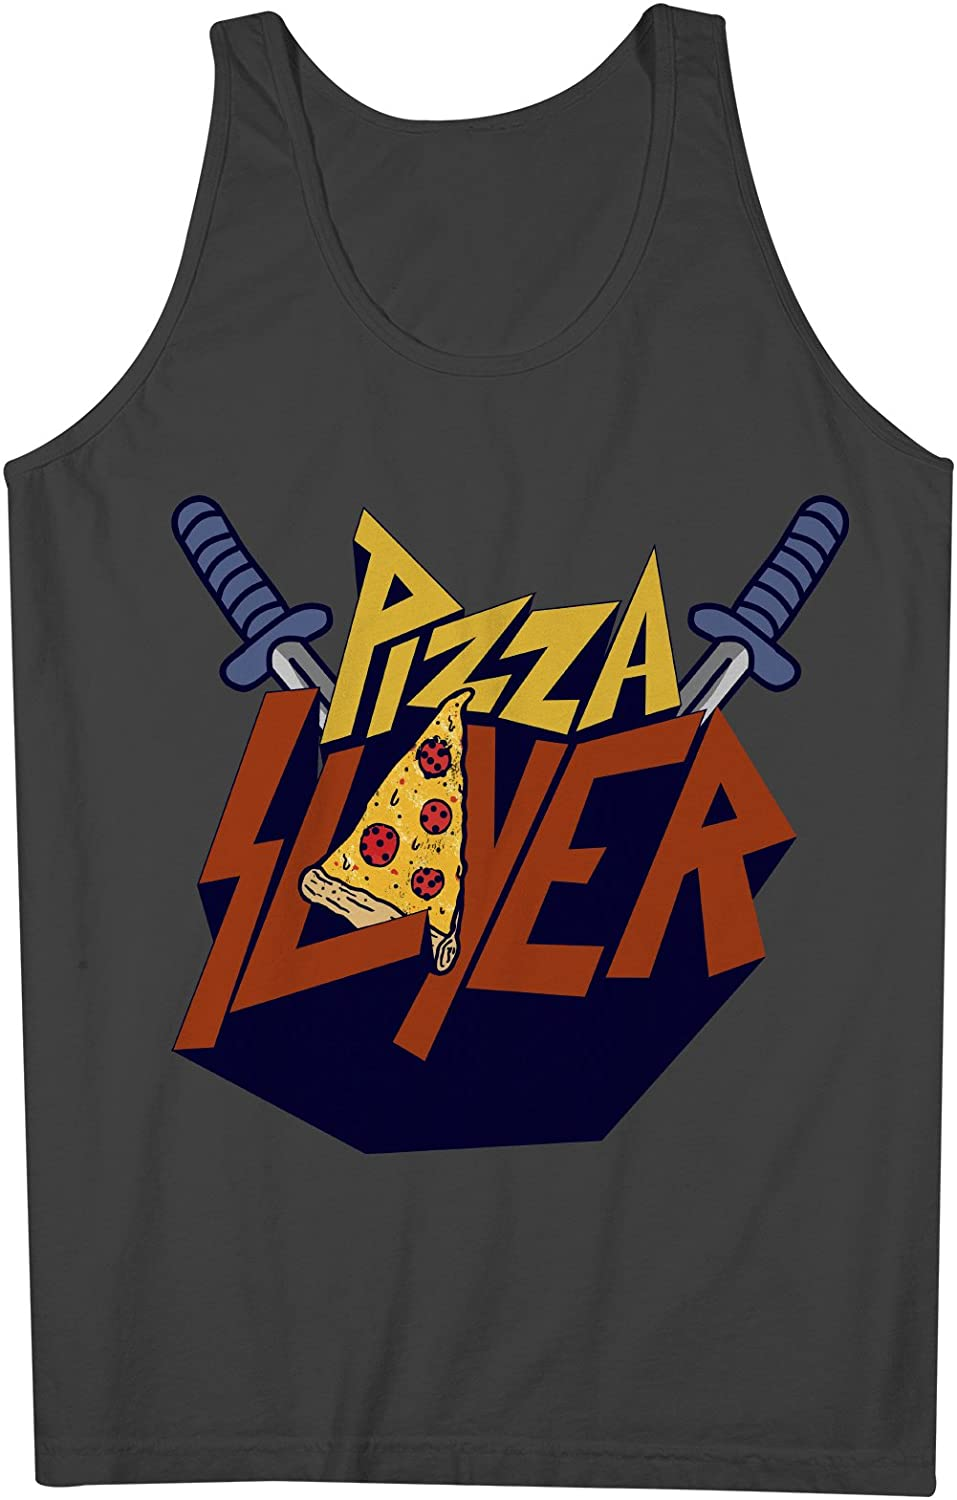 Pizza Slayer おかしいです Food 皮肉な 男性用 Tank Top Sleeveless Shirt